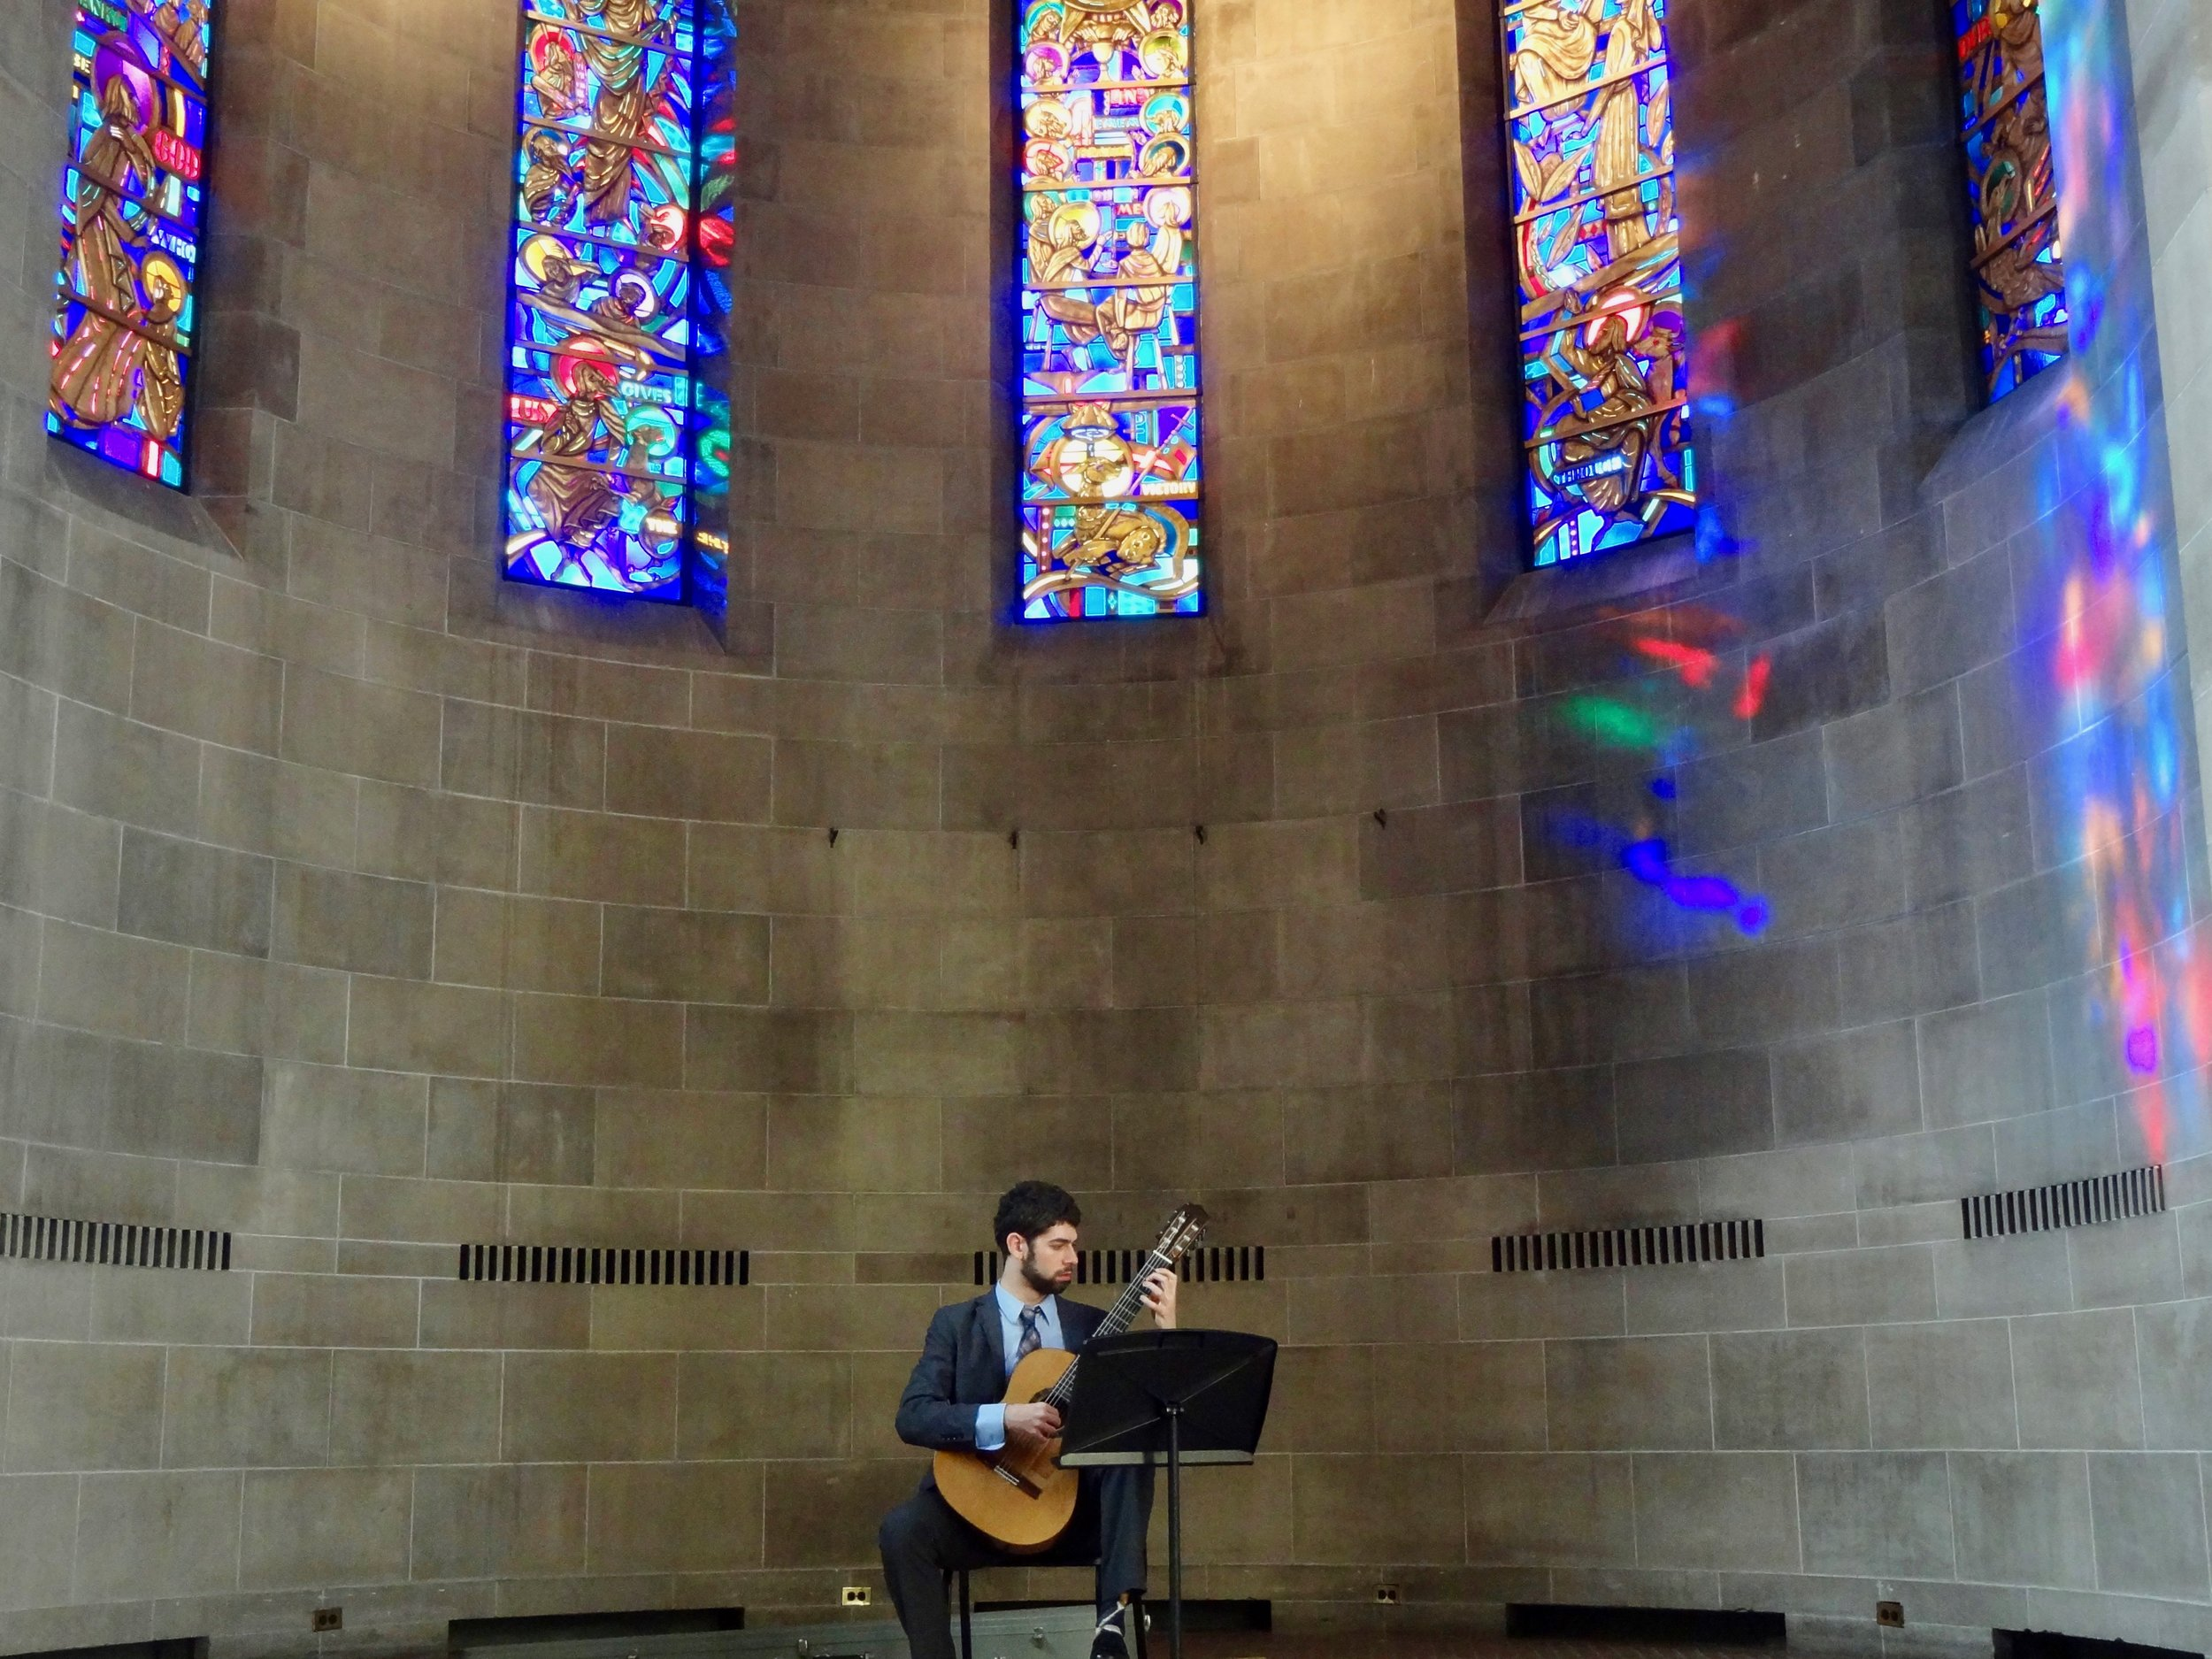 Note the prism-rainbow effect on the wall. Fairchild Chapel can be a magical place to play in.